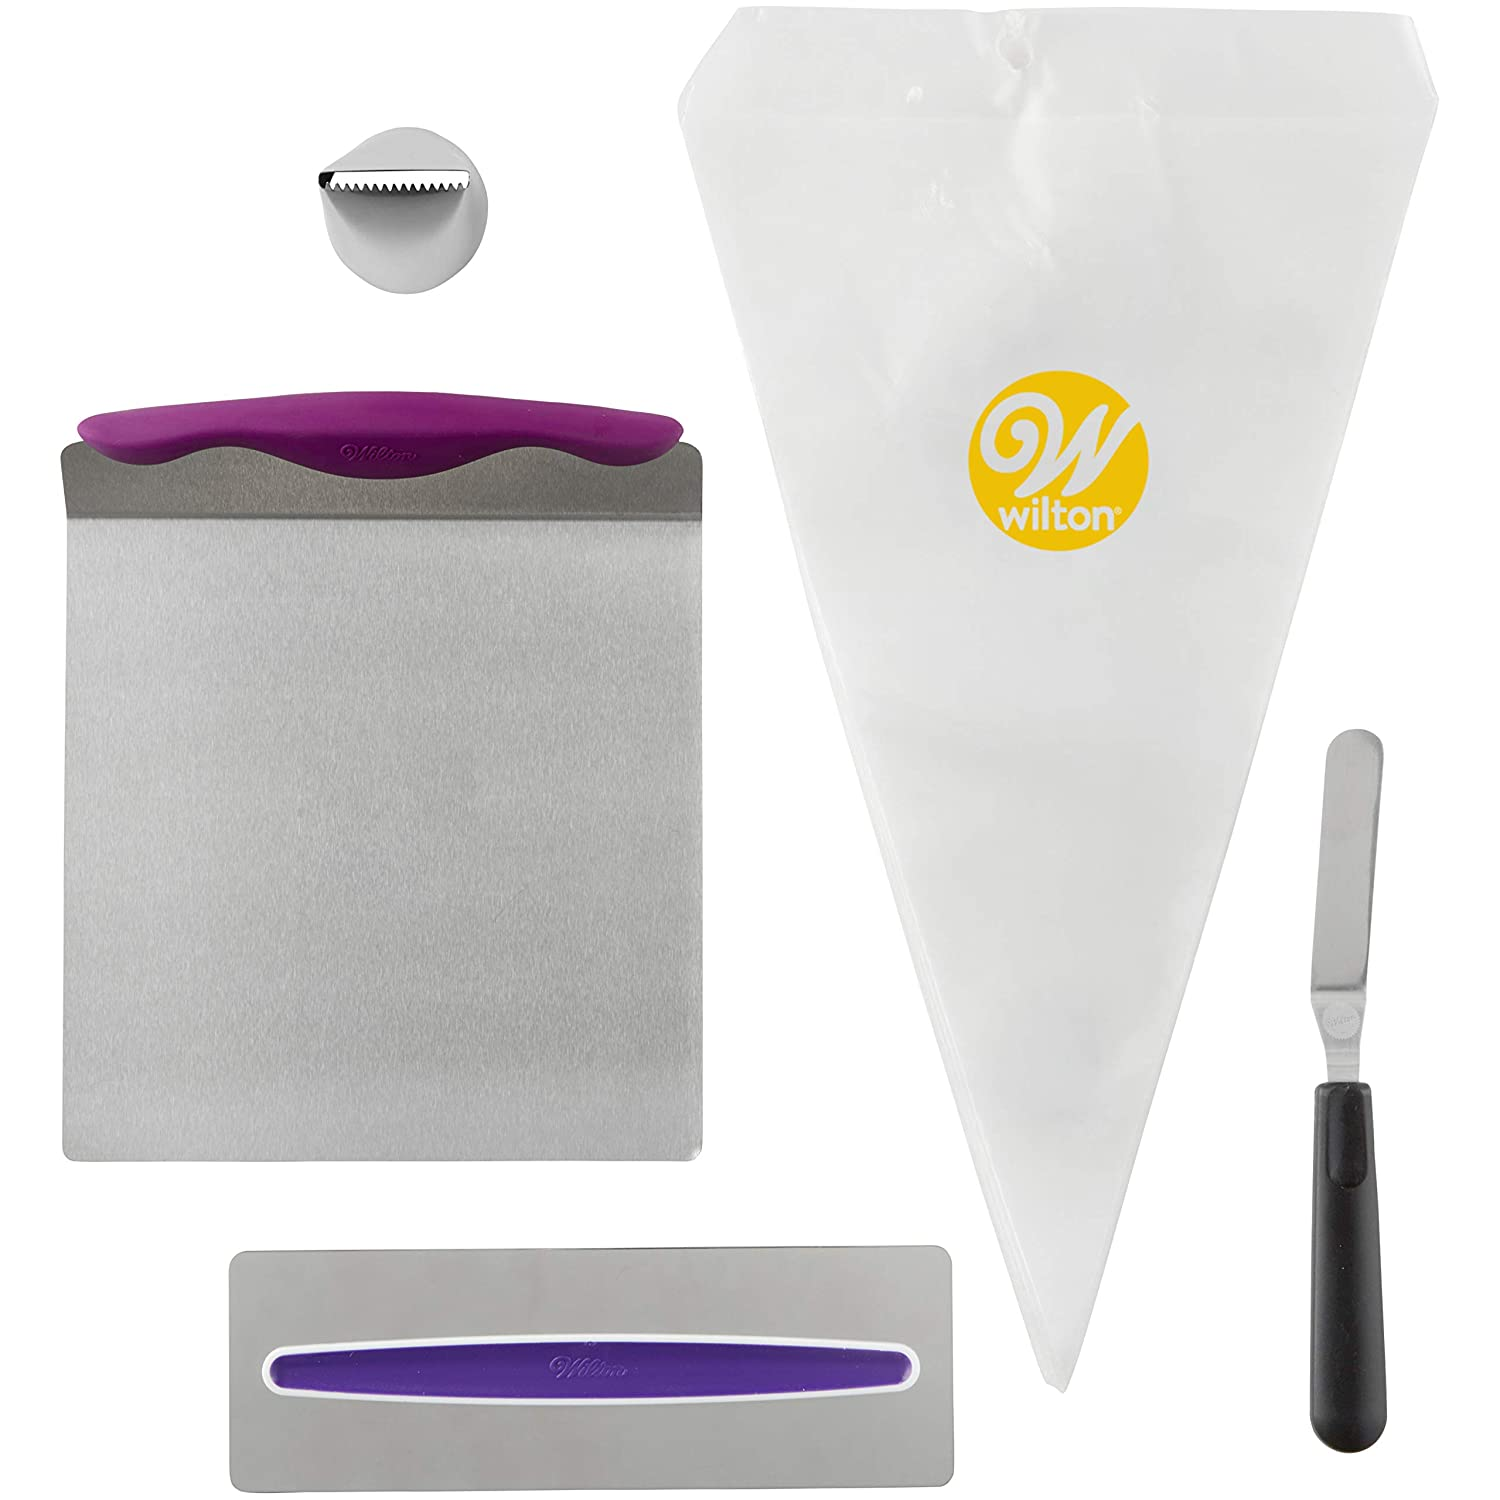 Wilton Cake Decorating Kit for Beginners - Lifter, Spatula, Icing Tip/Smoother, and Disposable Decorating Bags 2104-3641